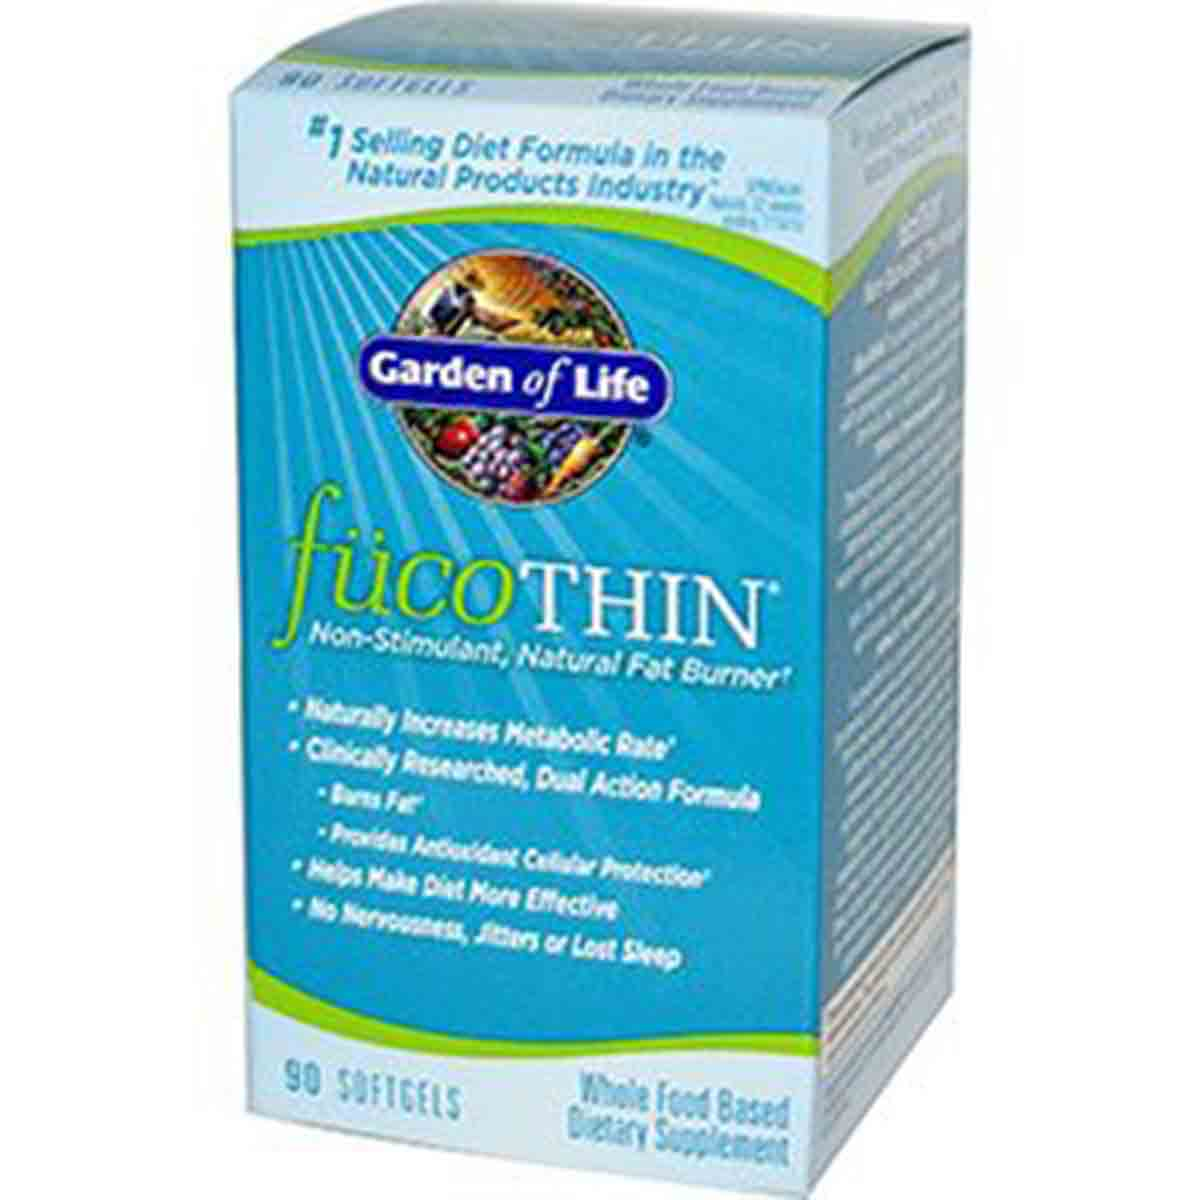 Garden Of Life FucoTHIN Fat Burner